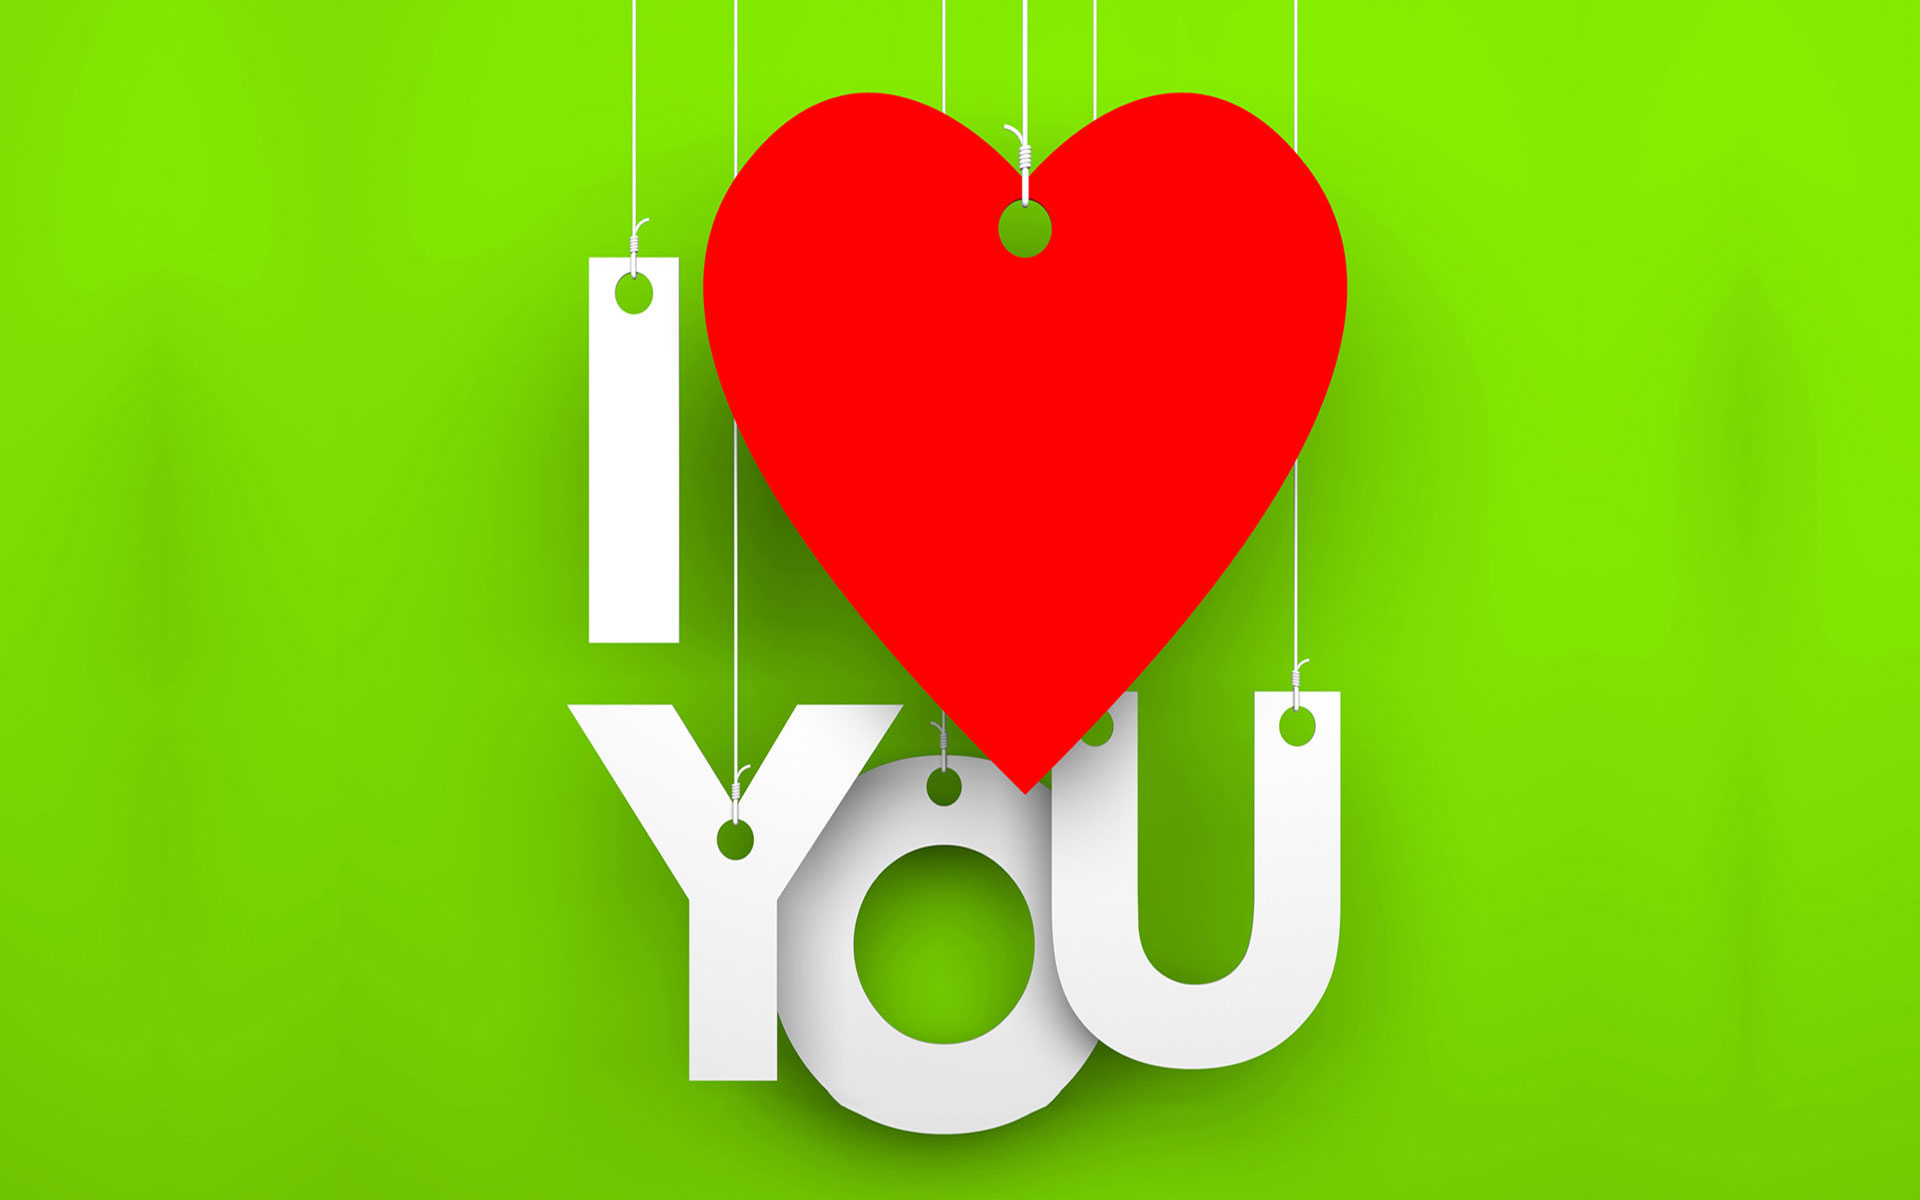 So cute Love Wallpaper : 25+ Free HD I Love You Wallpapers cute I Love You Images